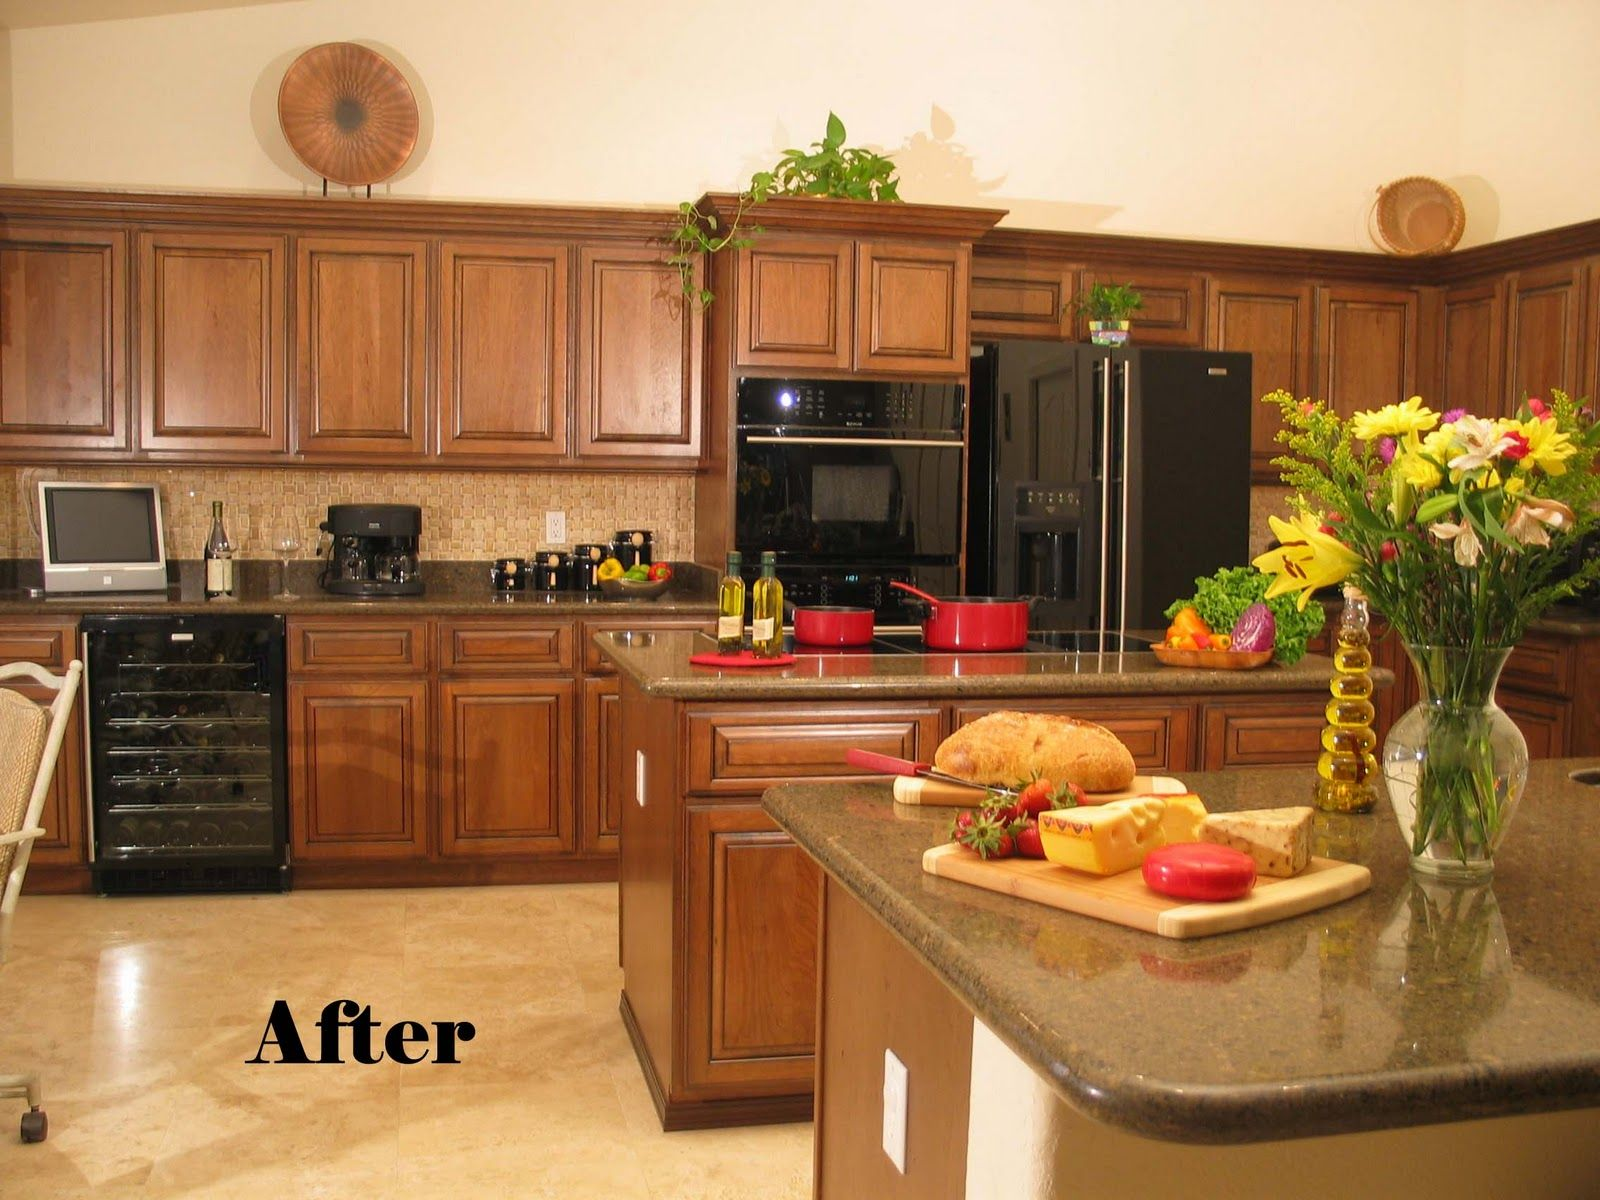 Refinish Kitchen Cabinets Cost Kitchen Design Ideas Refinish Kitchen Cabinets Kitchen Refinishing Refinishing Cabinets